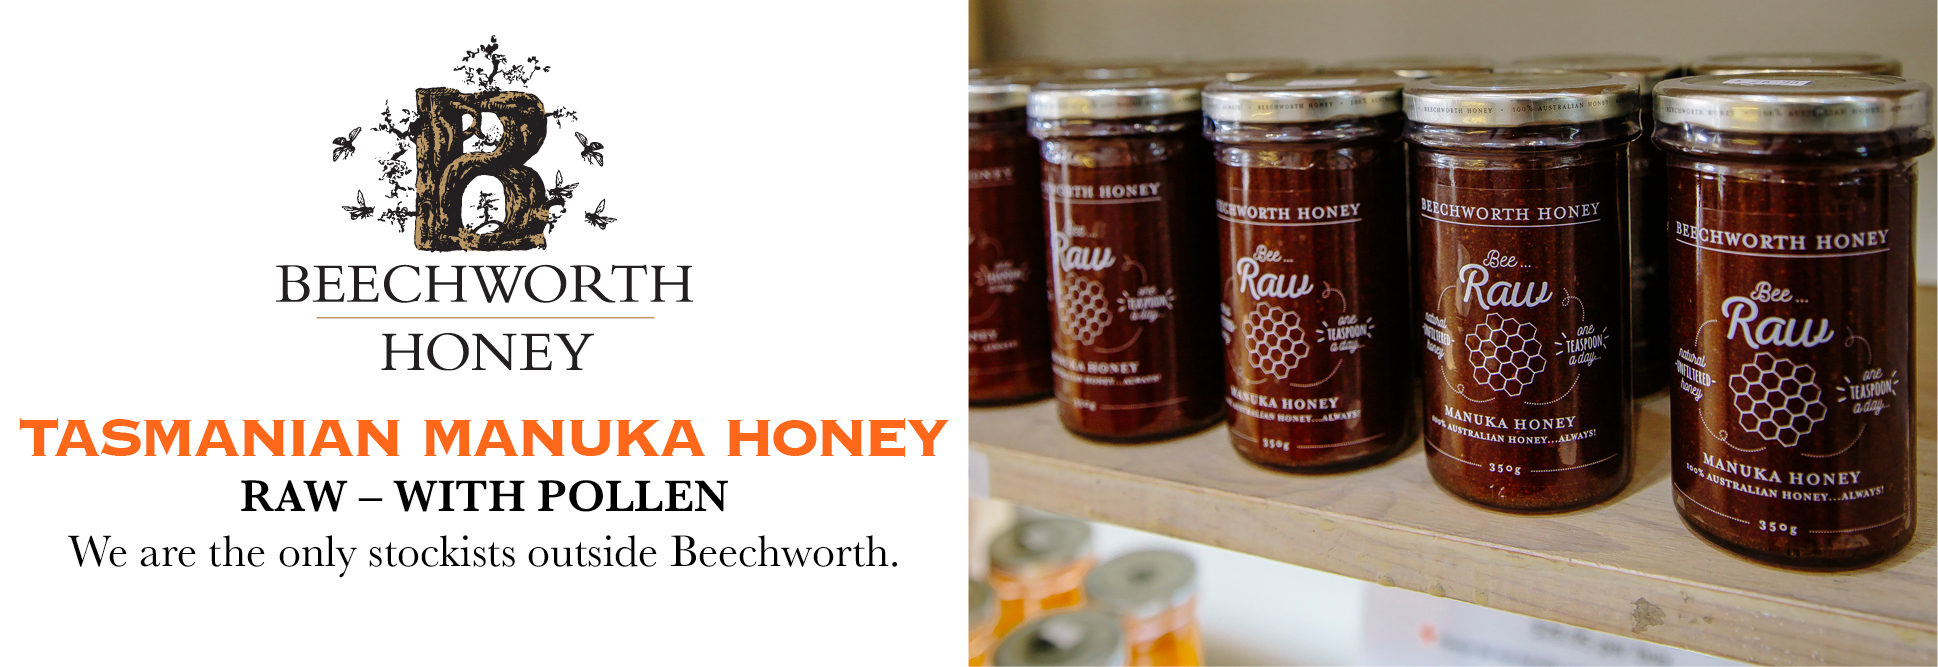 CAS_website_banner_Beechworth_Honey.jpg